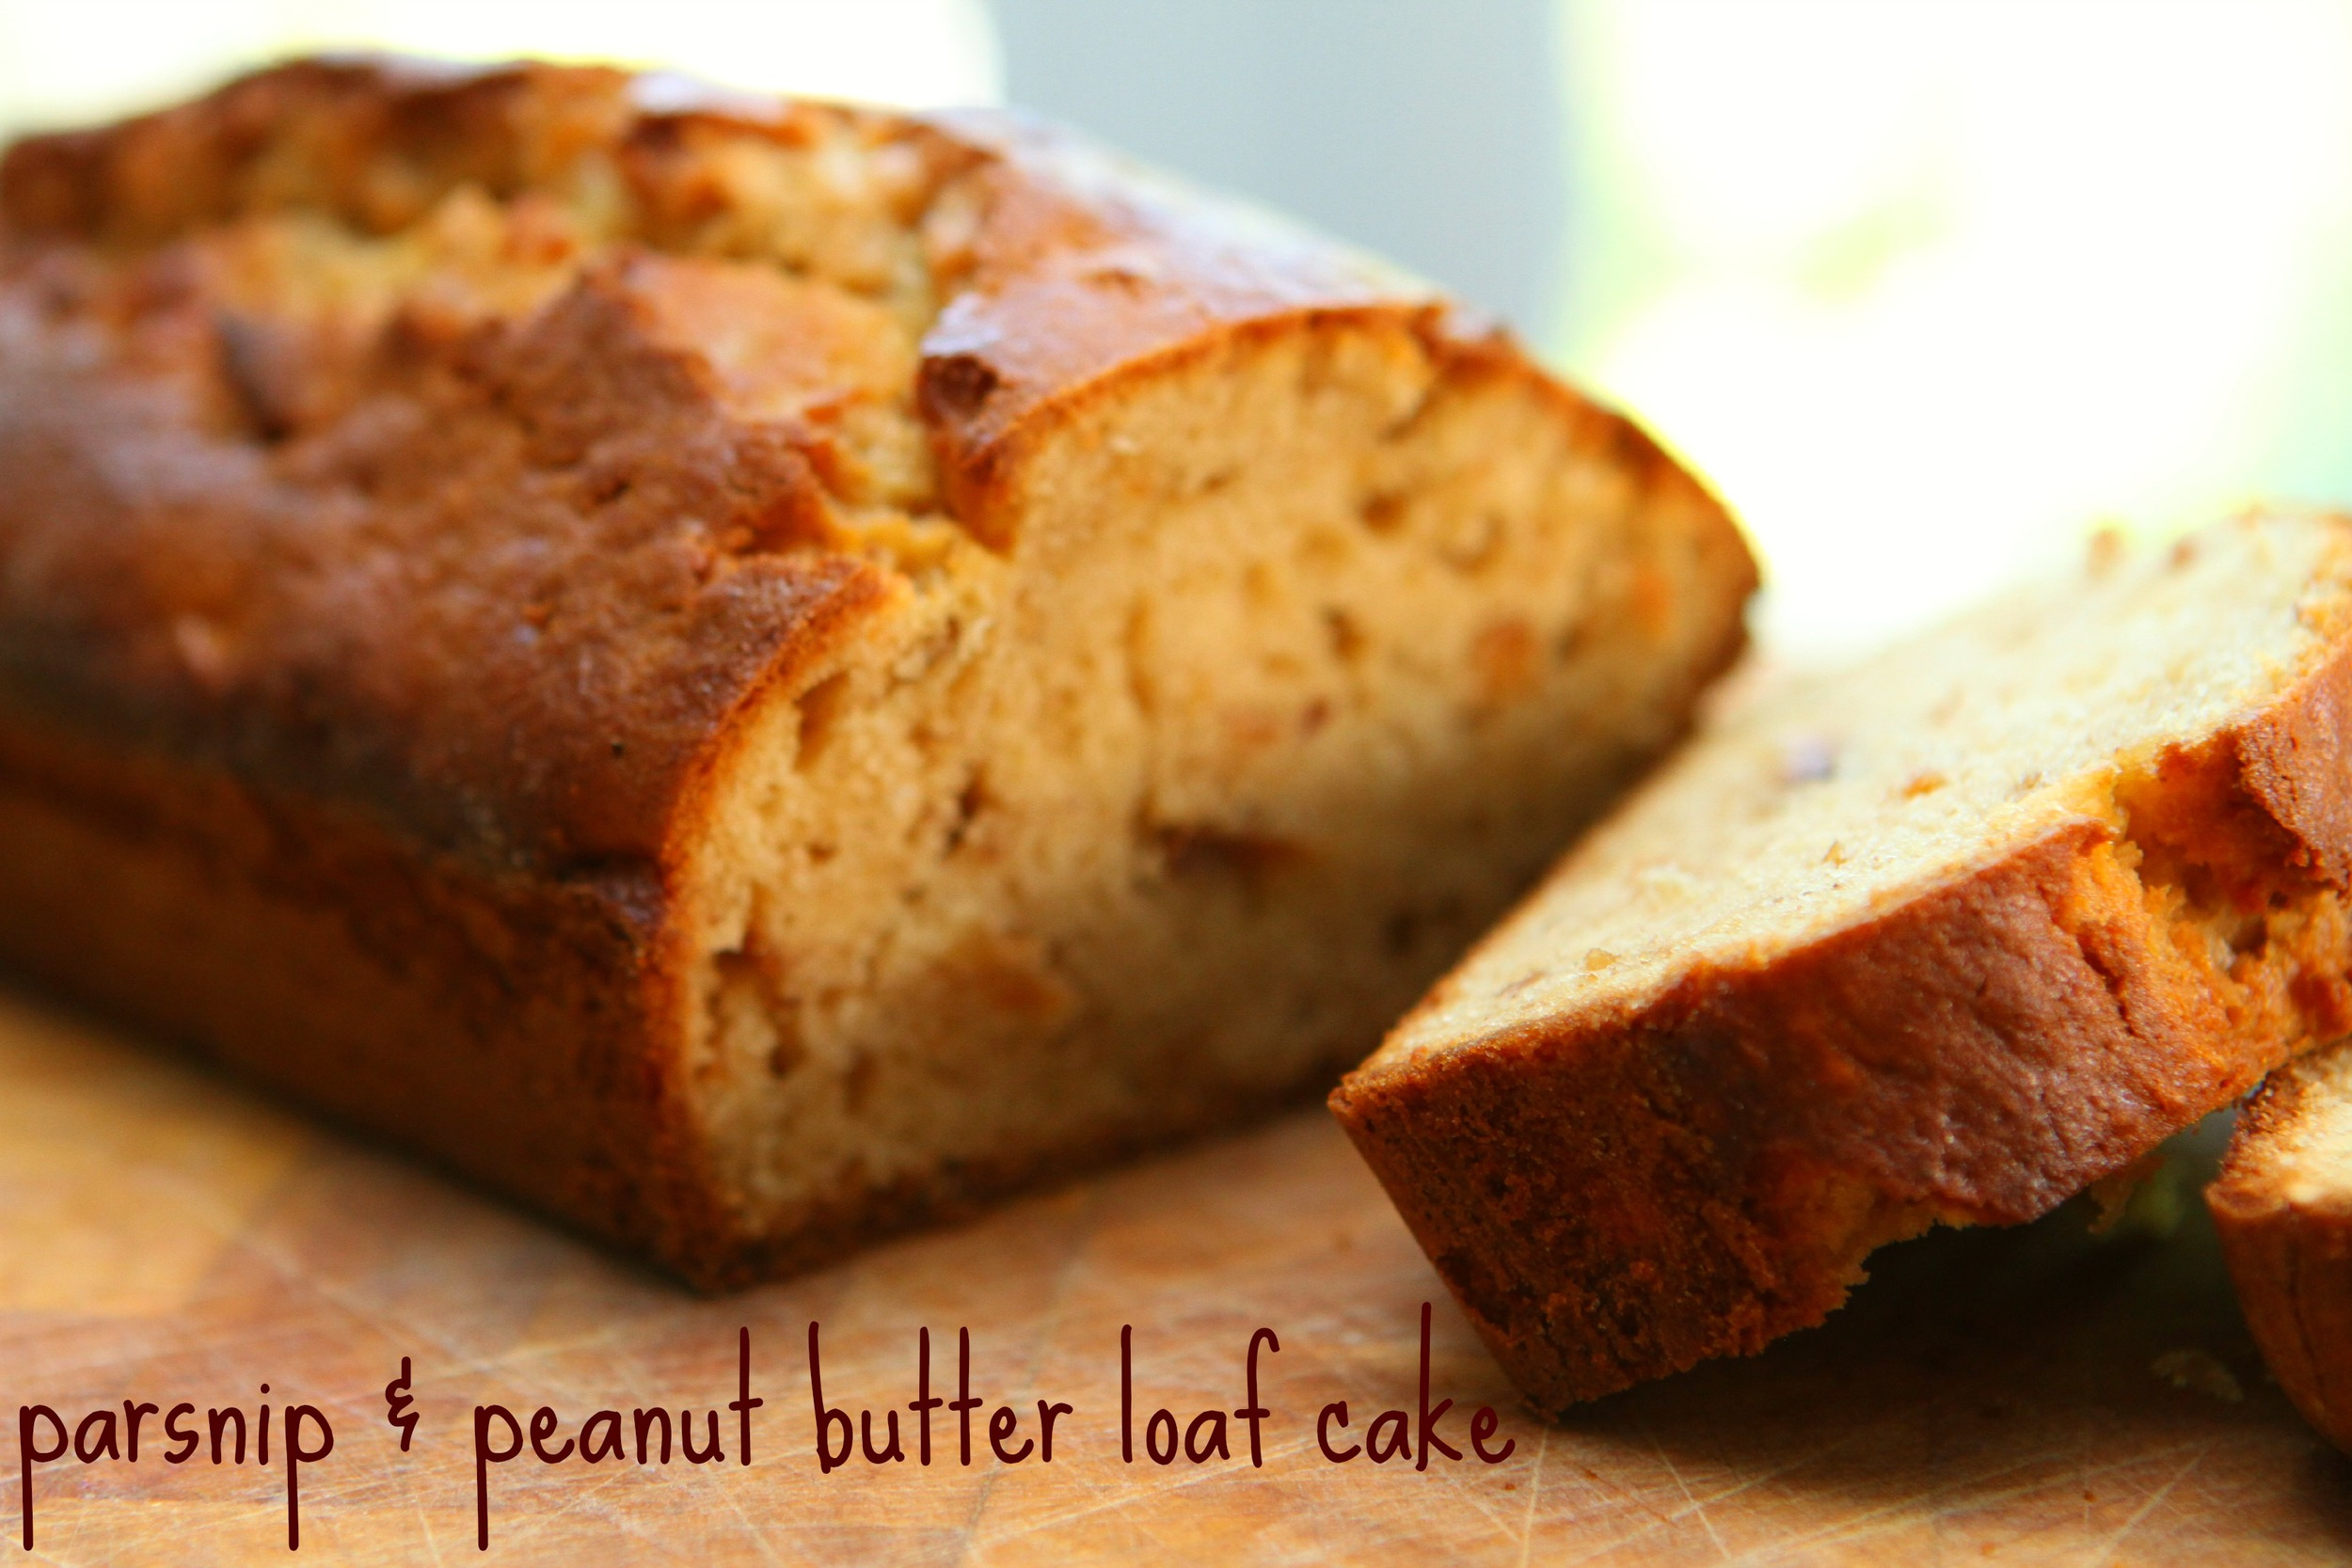 Parsnip & Peanut Butter Loaf Cake (Dairy Free)